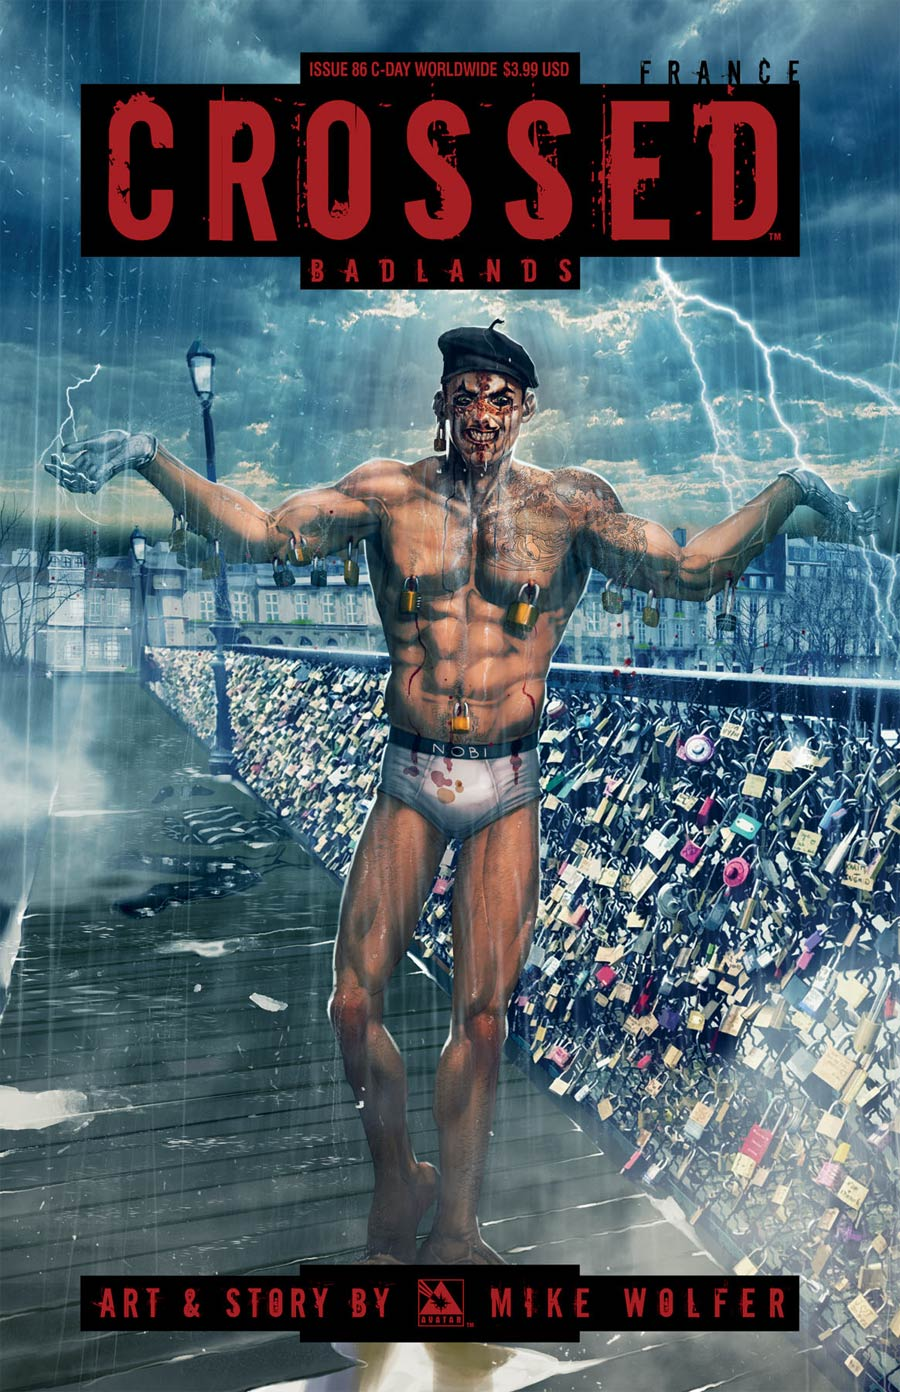 Crossed Badlands #86 Cover E C-Day Worldwide Cover